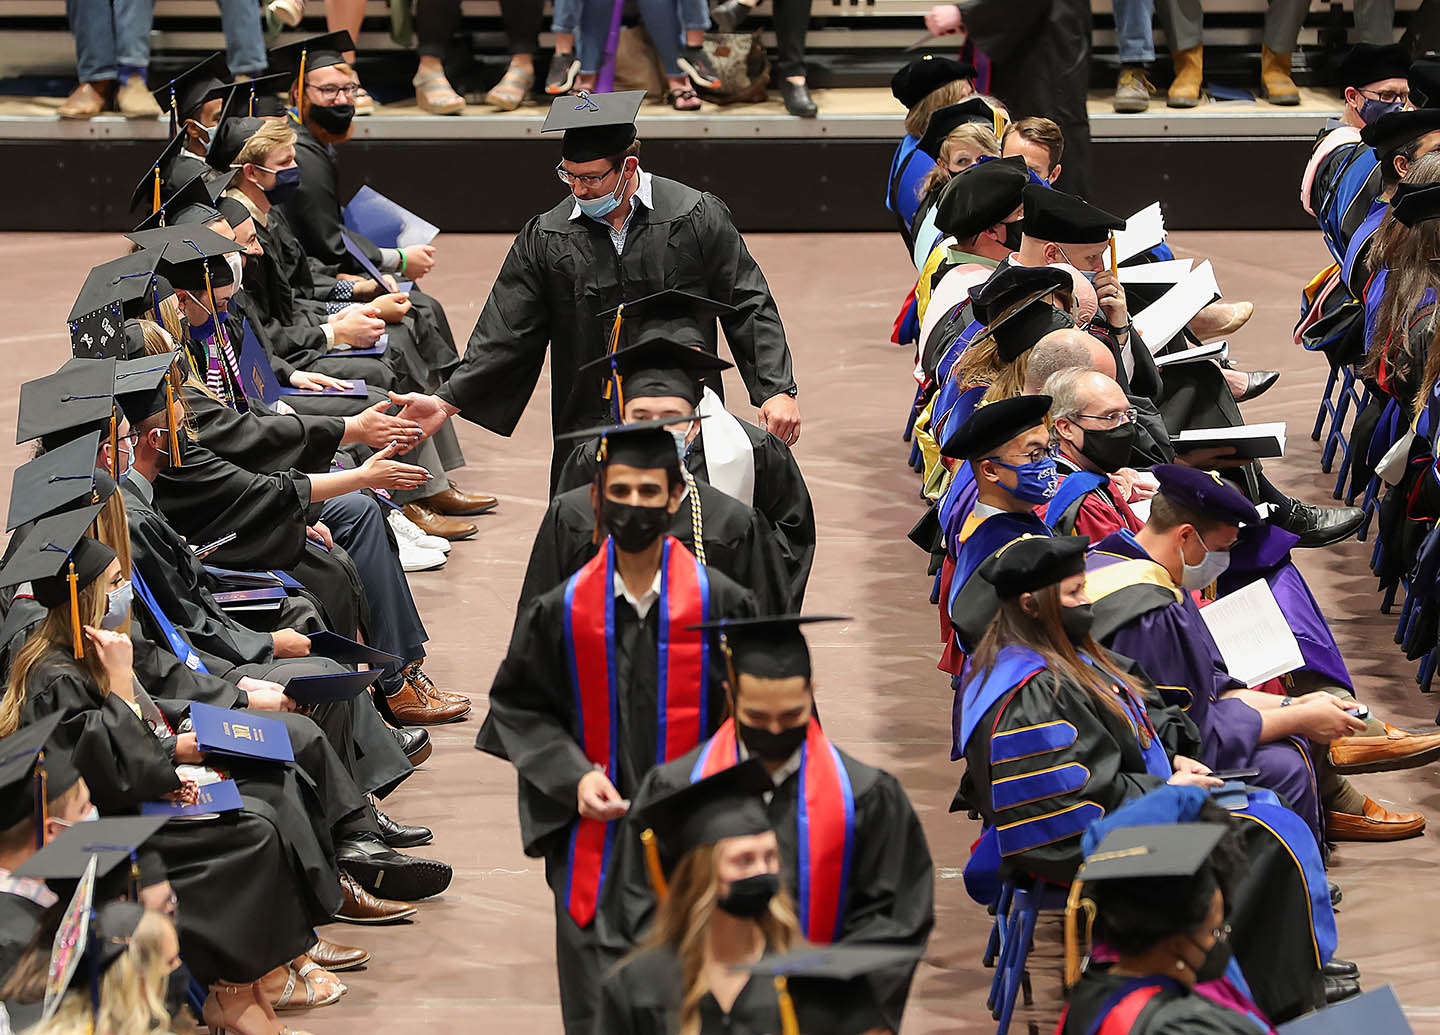 UNK conferred undergraduate degrees for about 500 students on Friday, and a separate graduate-degree hooding ceremony is scheduled for 10 a.m. Saturday at the Health and Sports Center. Nearly 200 degrees will be awarded during that event.